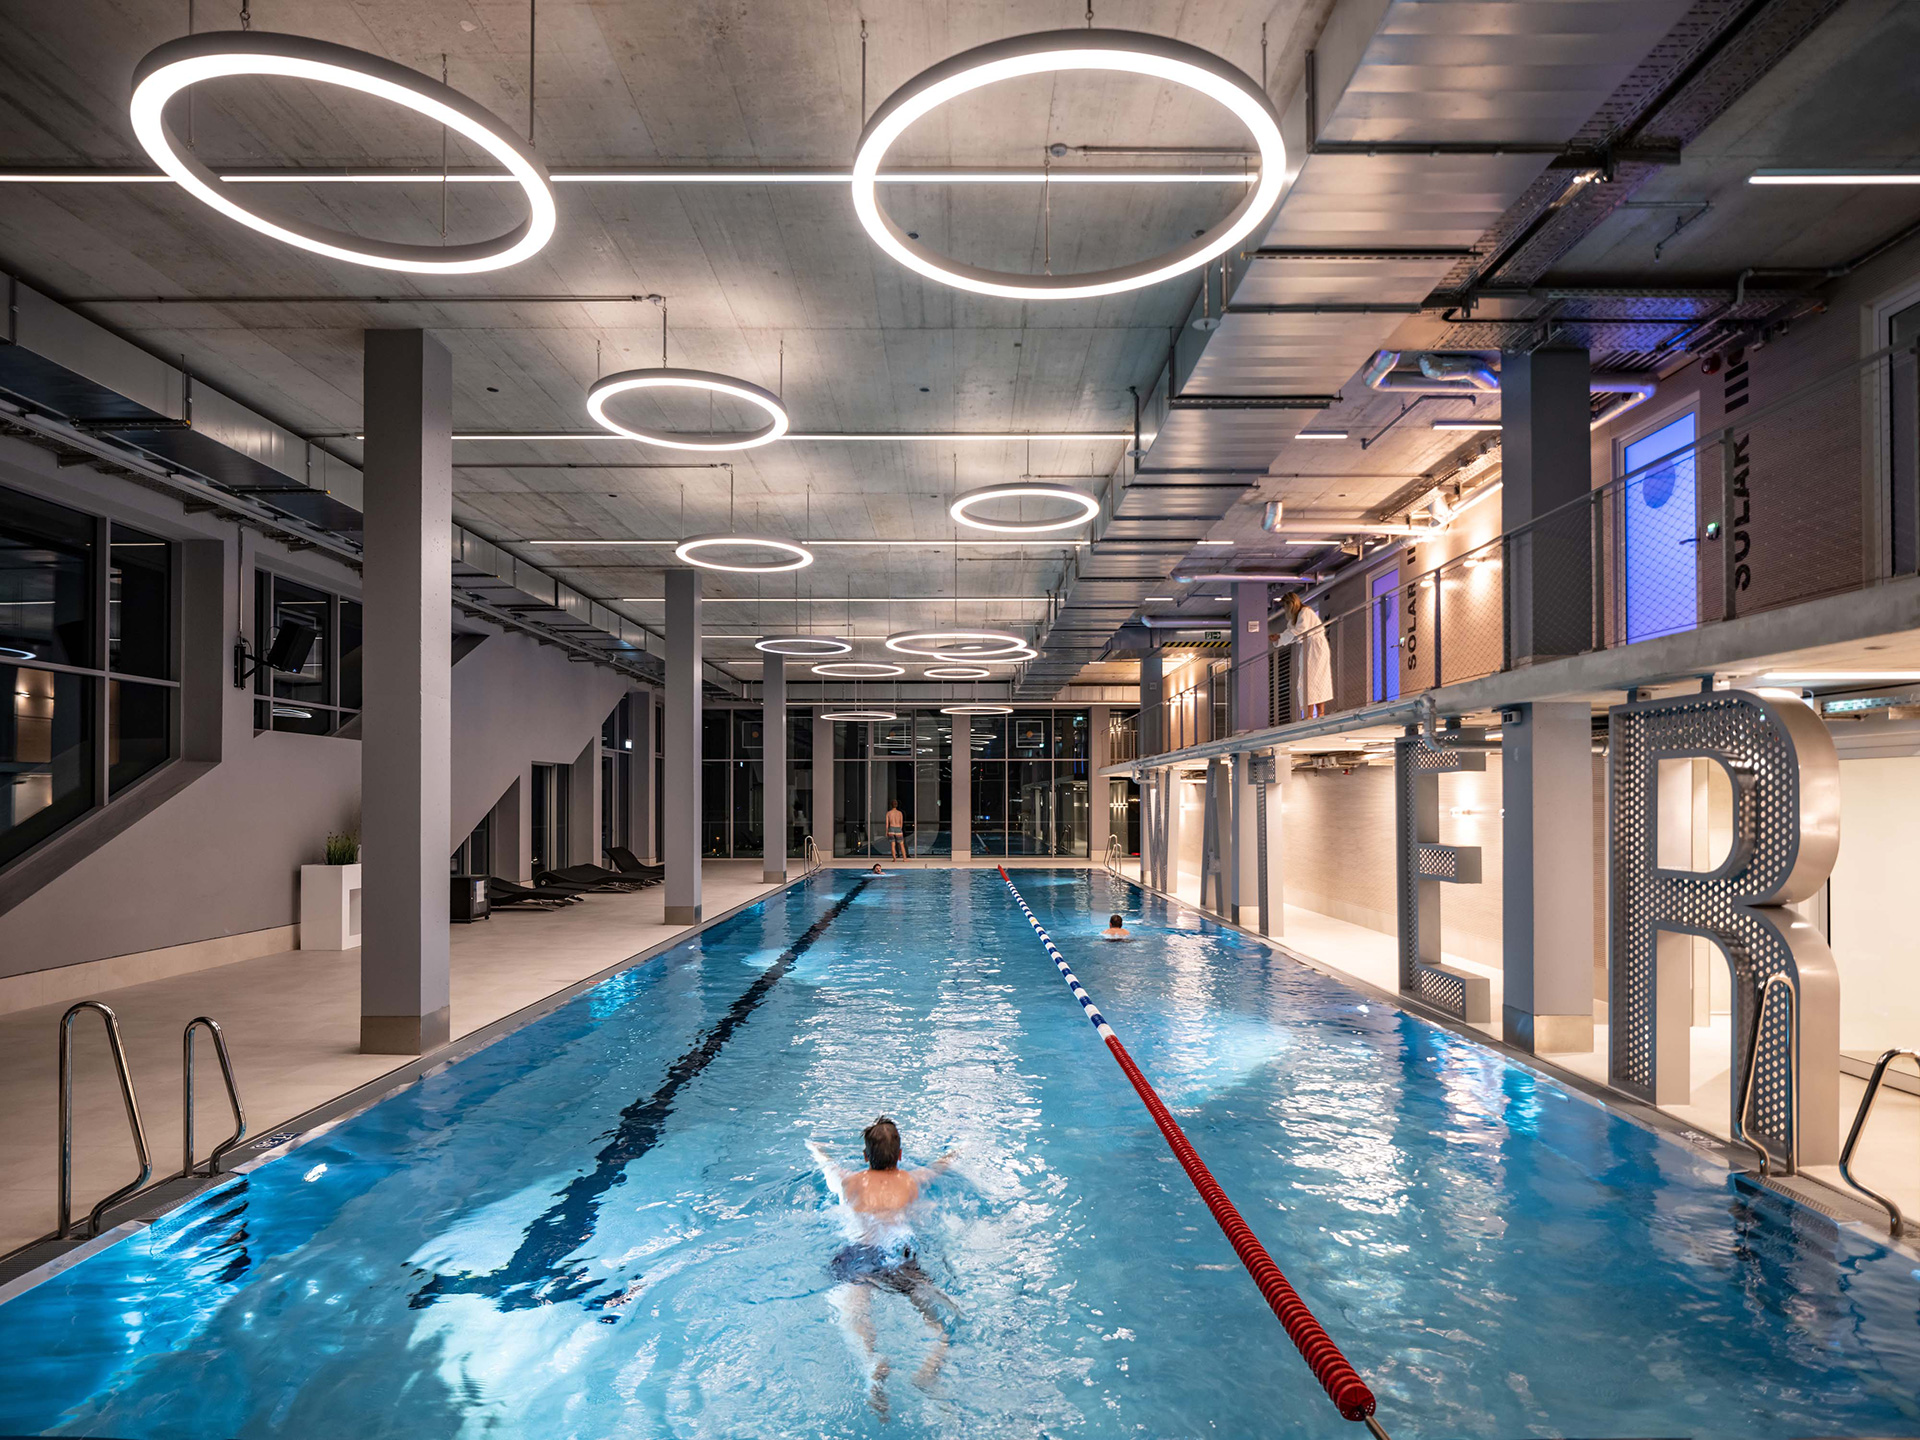 An entire floor of the building has been dedicated to a swimming pool | WERK12 | MVRDV | STIRworld